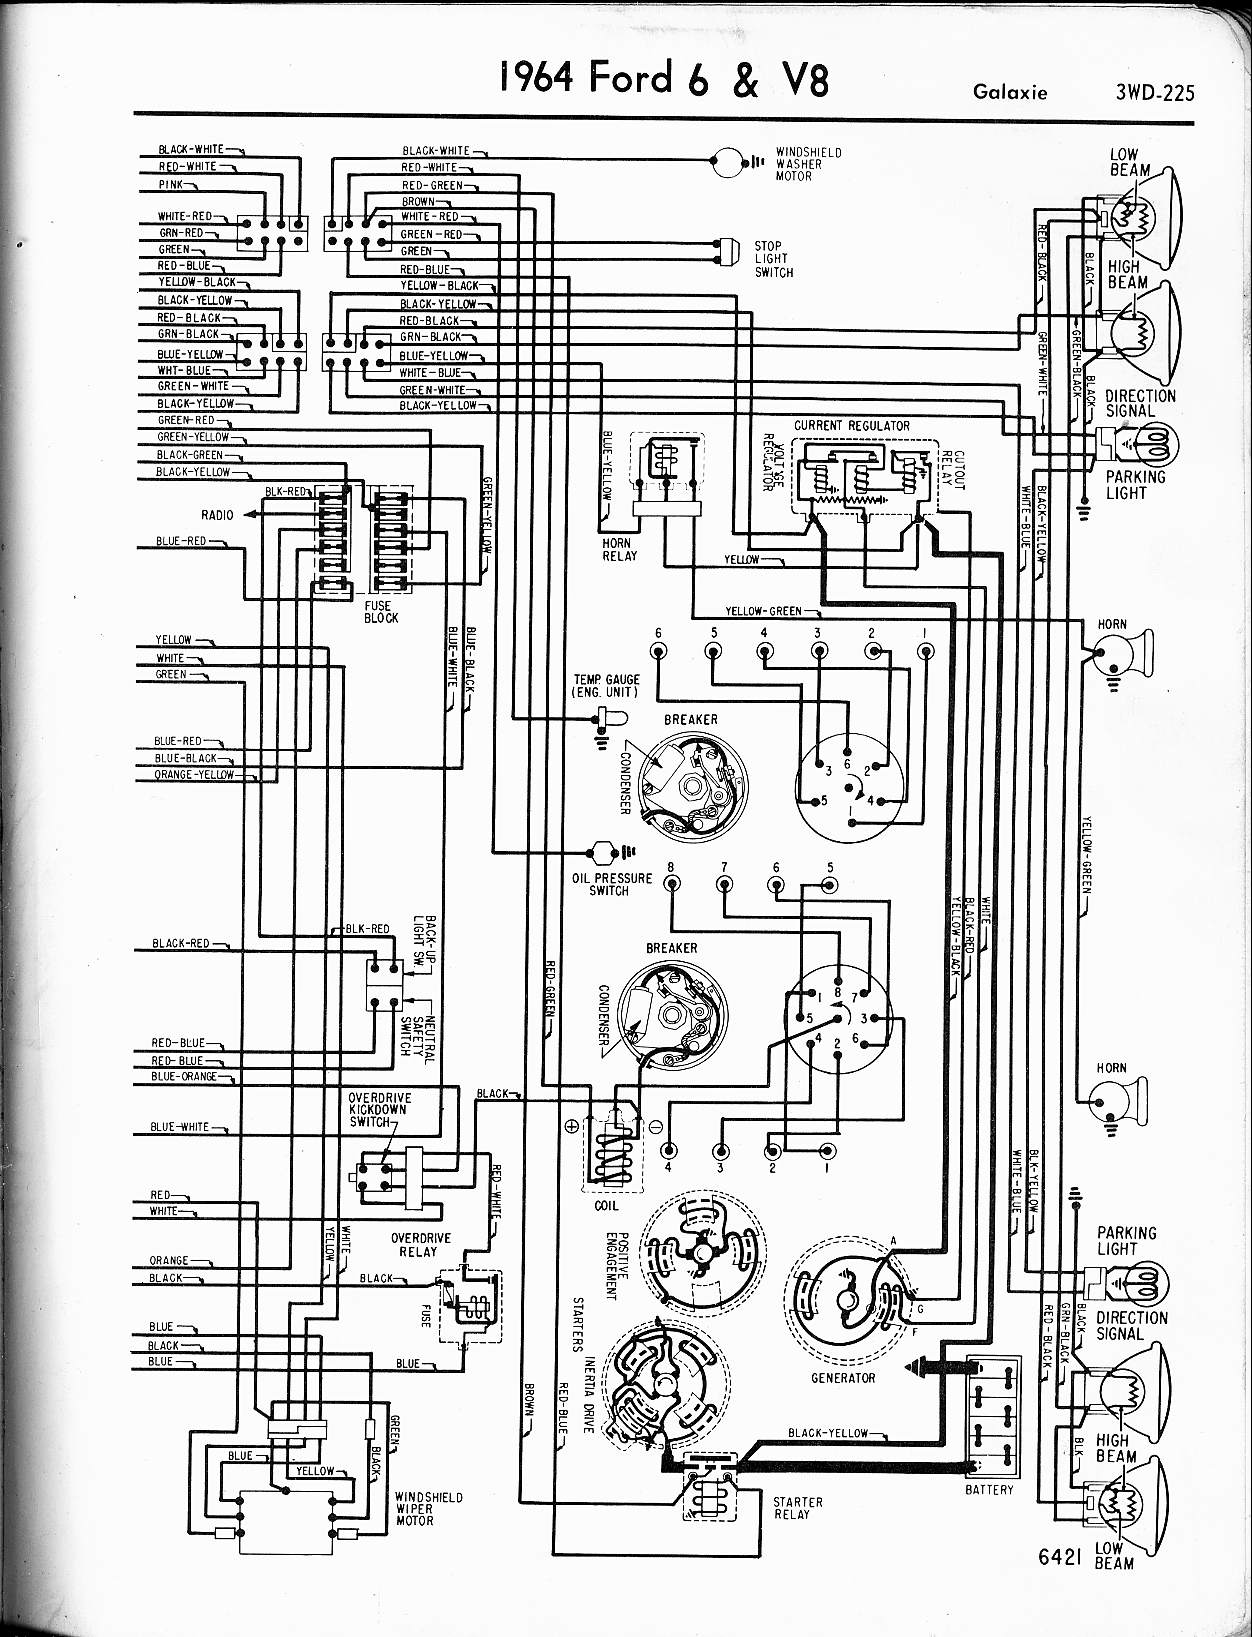 MWire5765 225 57 65 ford wiring diagrams Ford E 350 Wiring Diagrams at mifinder.co